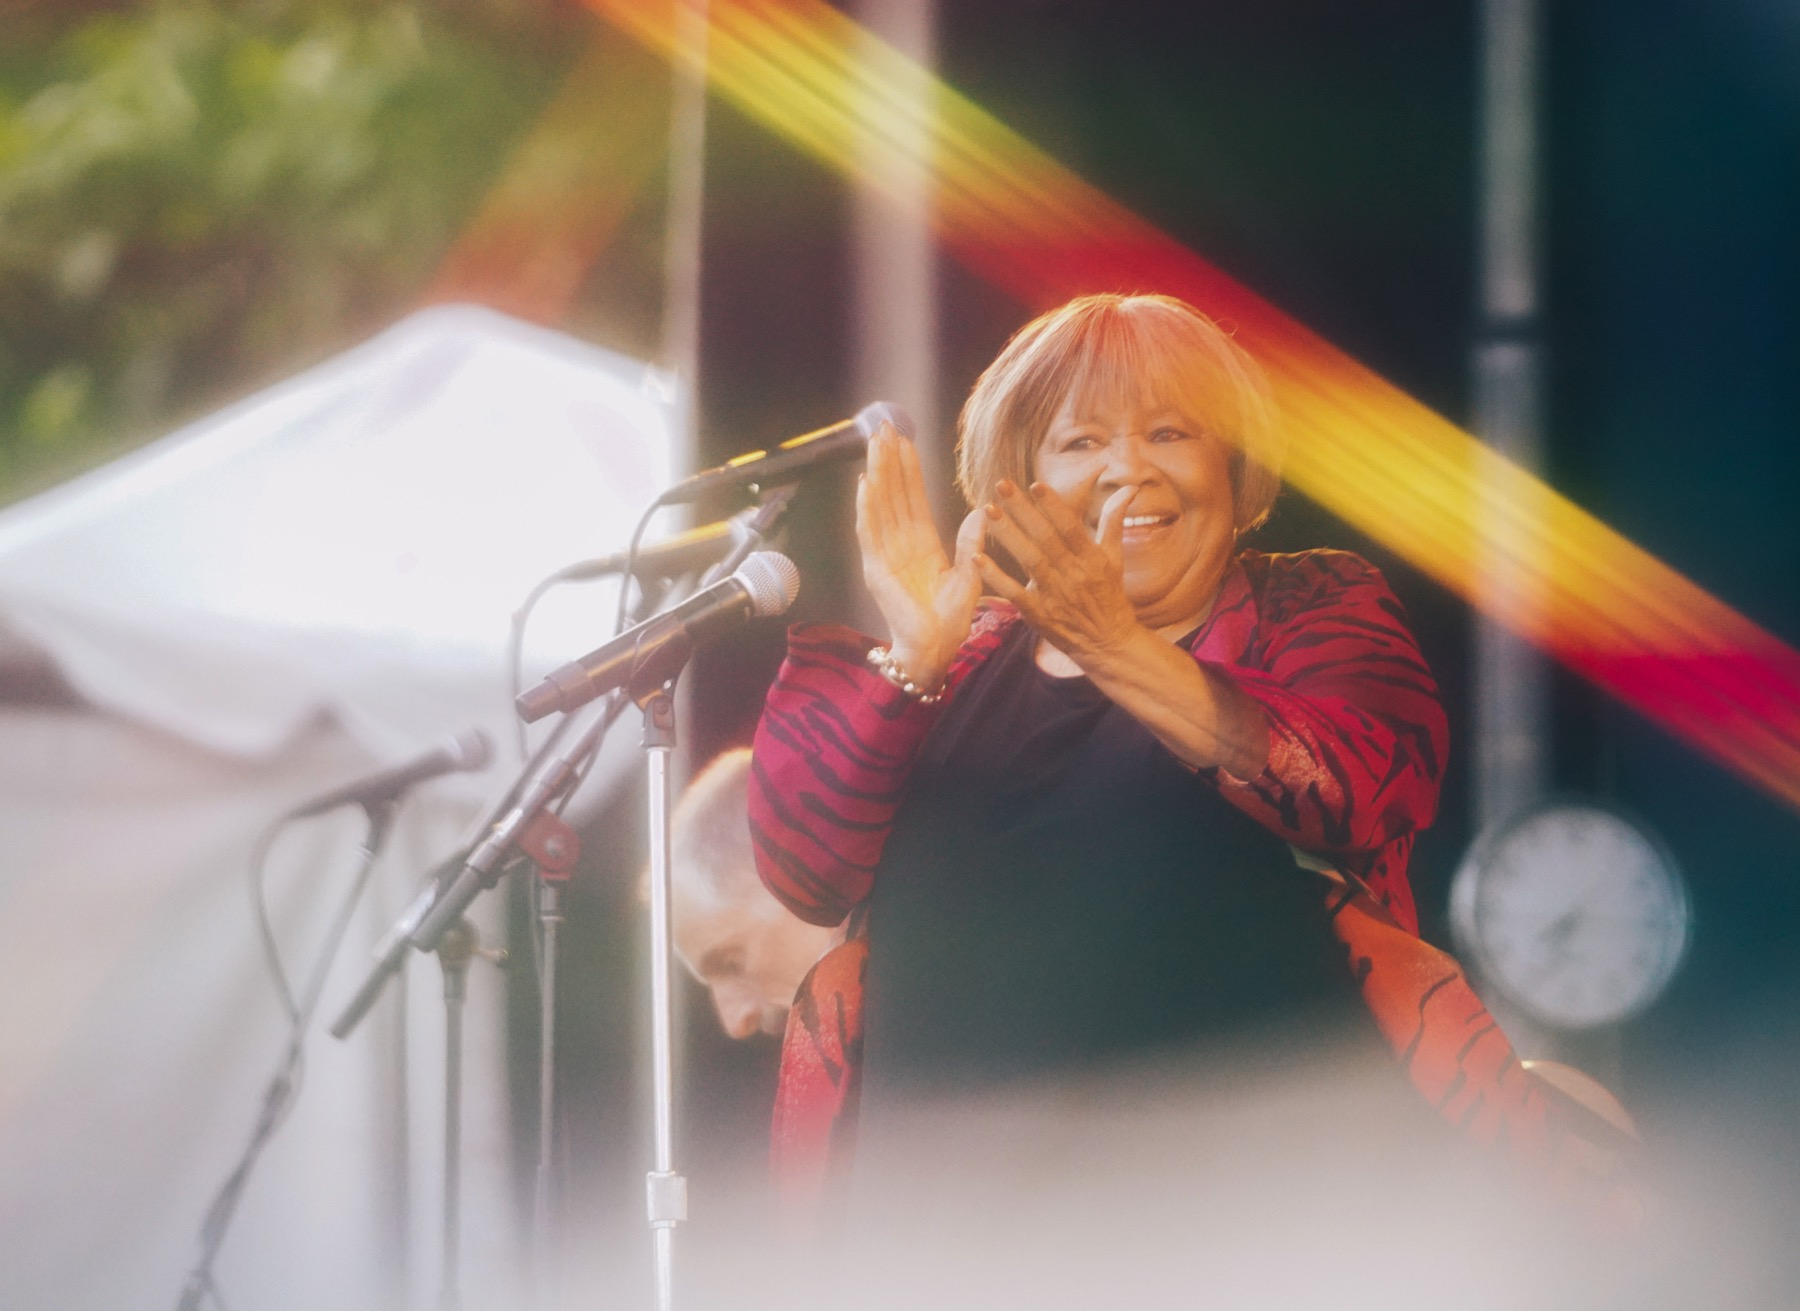 Mavis Staples @ Pitchfork Music Festival 7/19/19. Photo by Aubrey Wipfli (@aubreyy) for www.BlurredCulture.com.